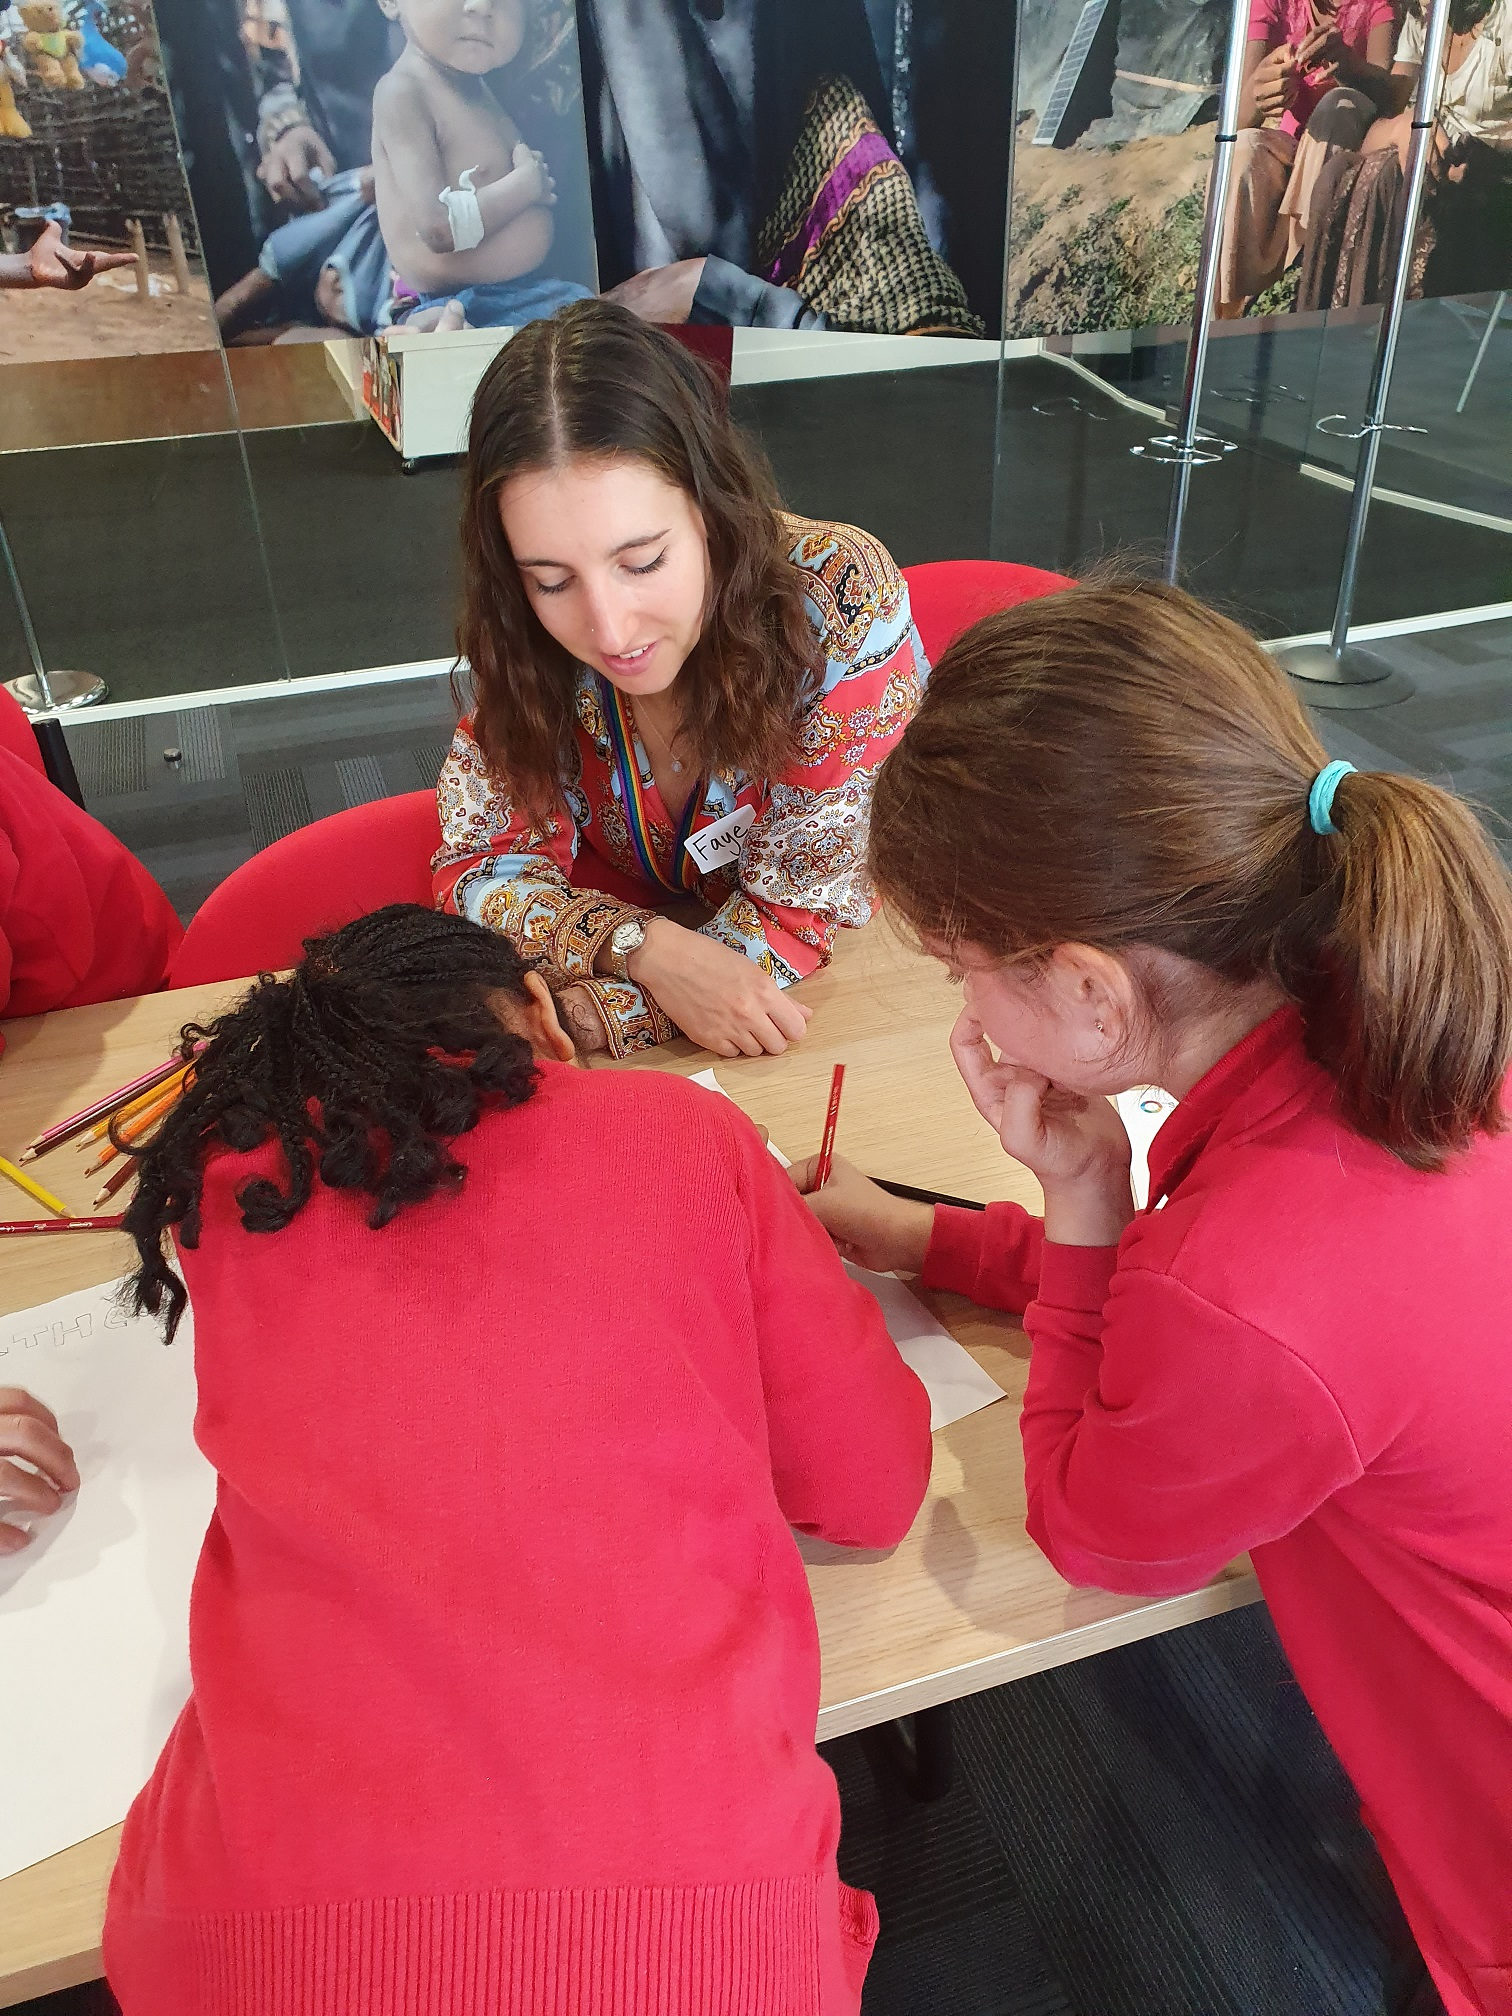 Holly Park students working on the Save the Children UK branding